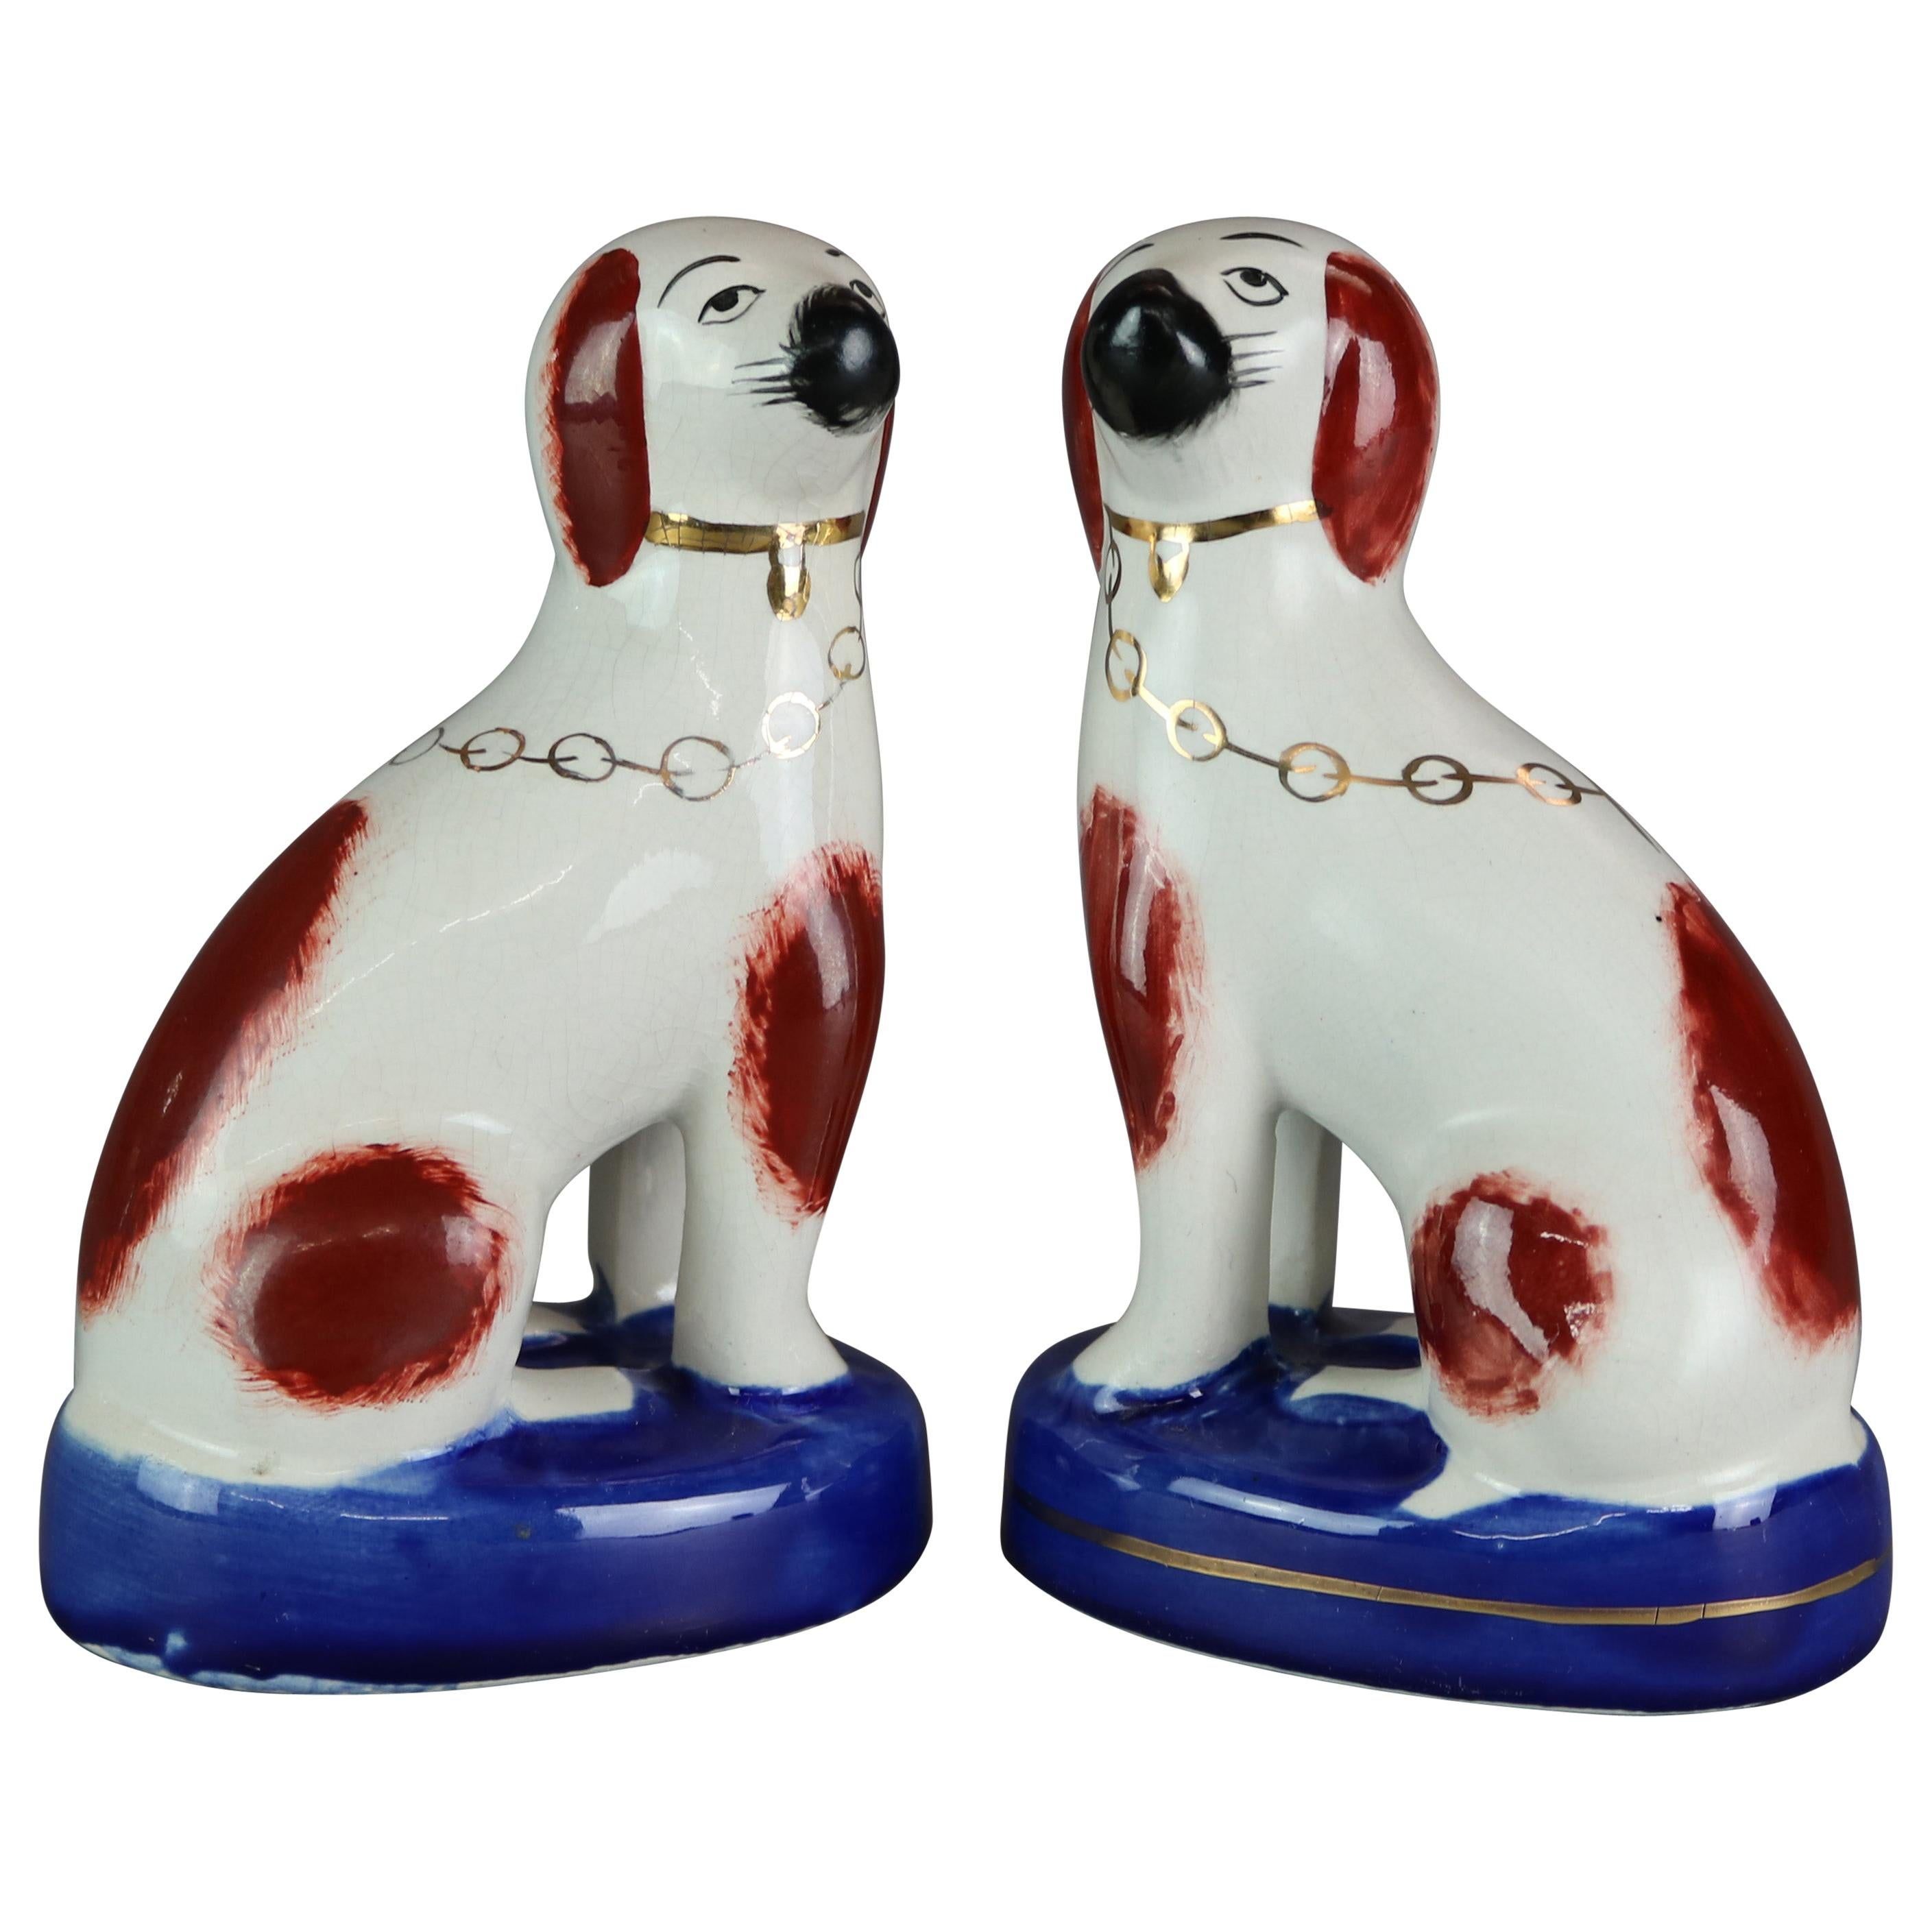 Antique Pair of English Pottery Staffordshire Dogs, Spaniels, circa 1900